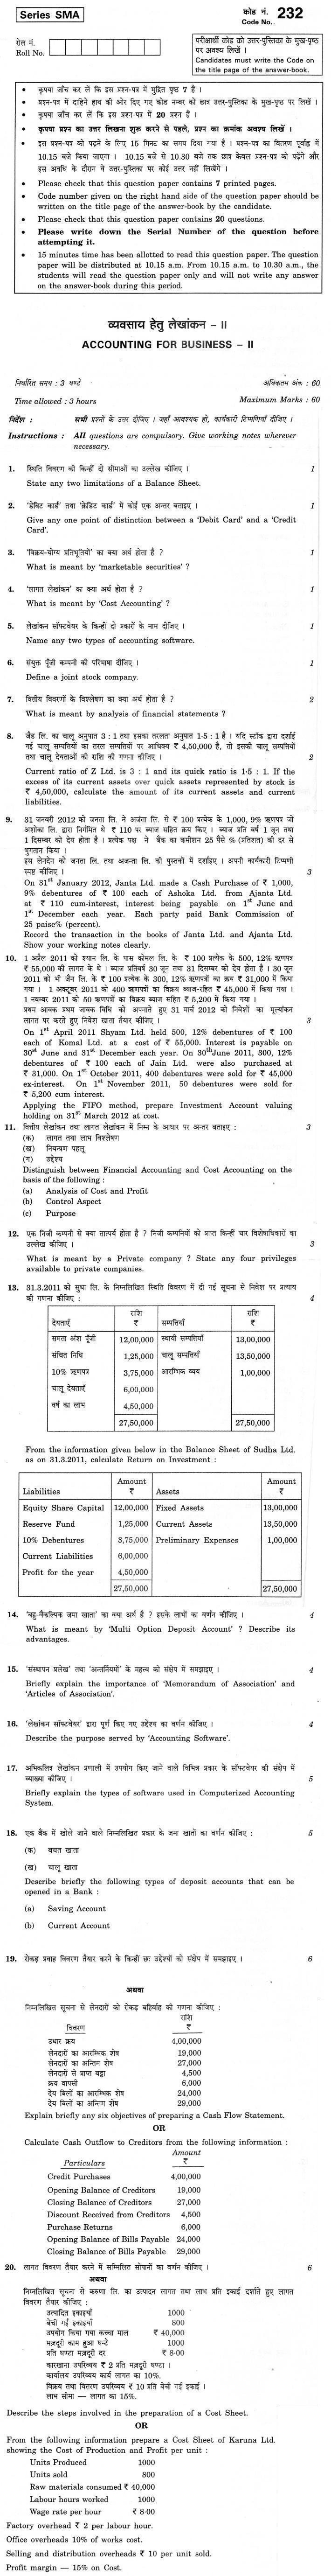 CBSE Class XII Previous Year Question Paper 2012 Accounting for Business